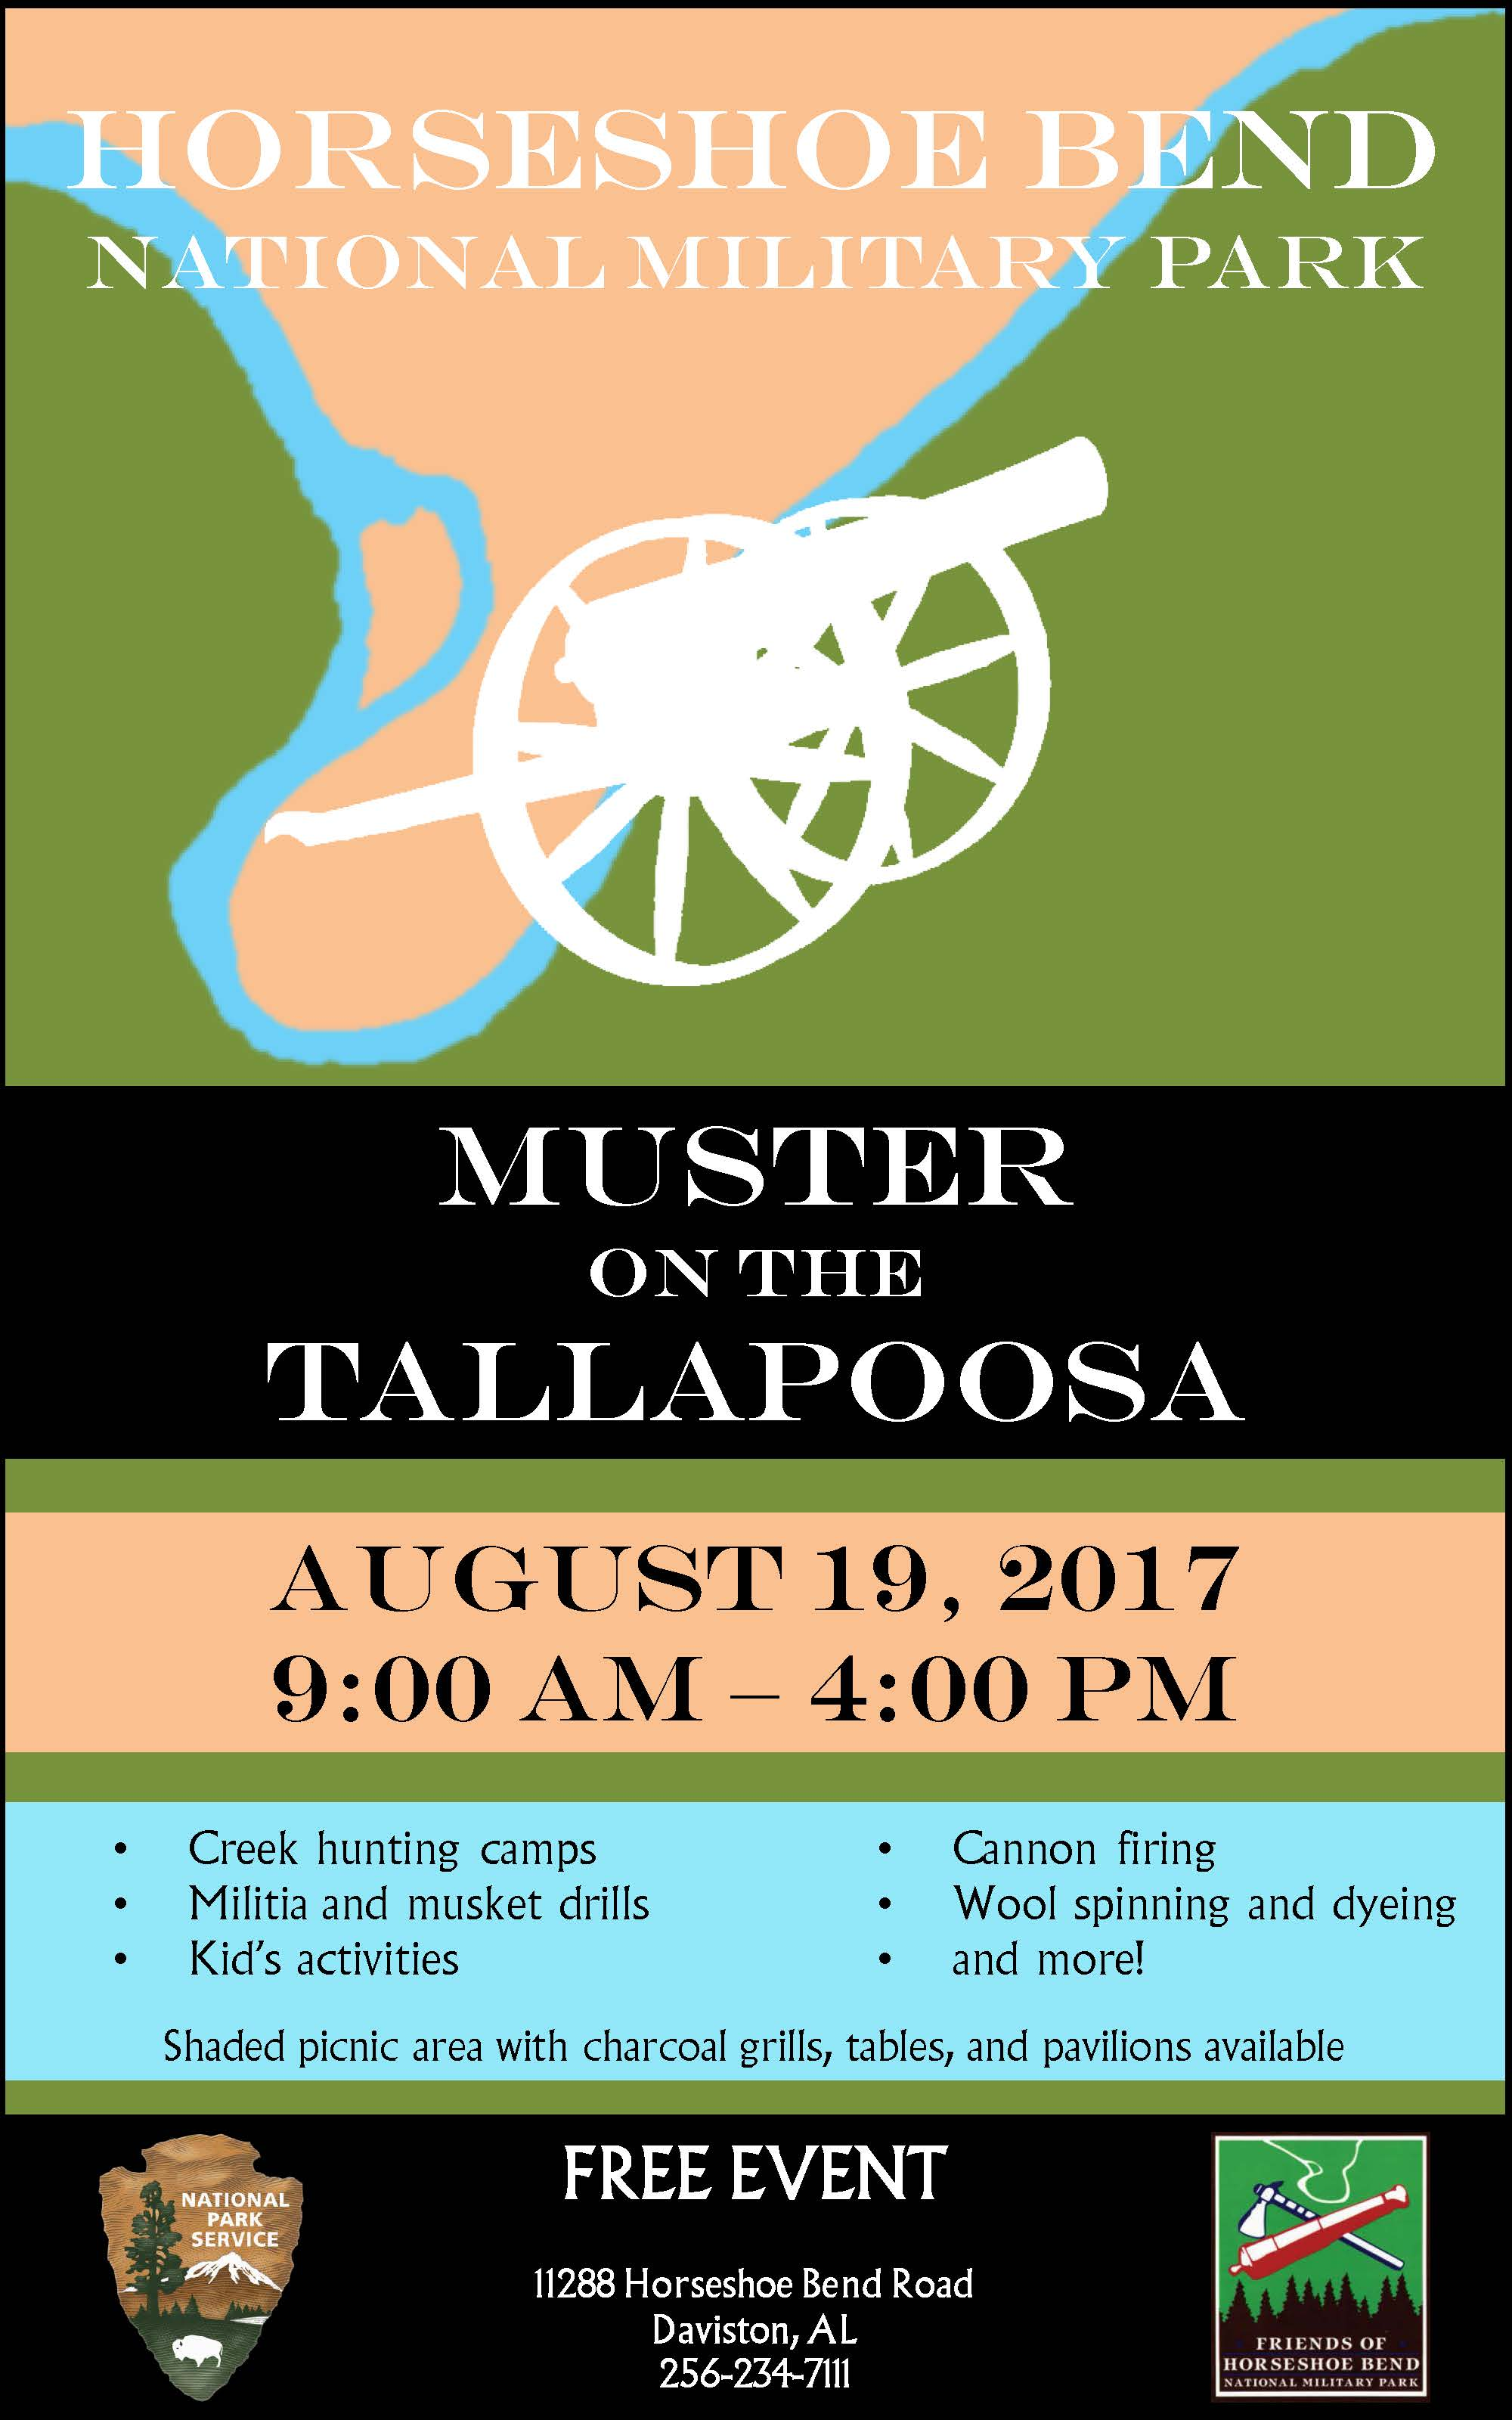 flyer for event background is river silhouette foreground is white cannon - Flyer Muster